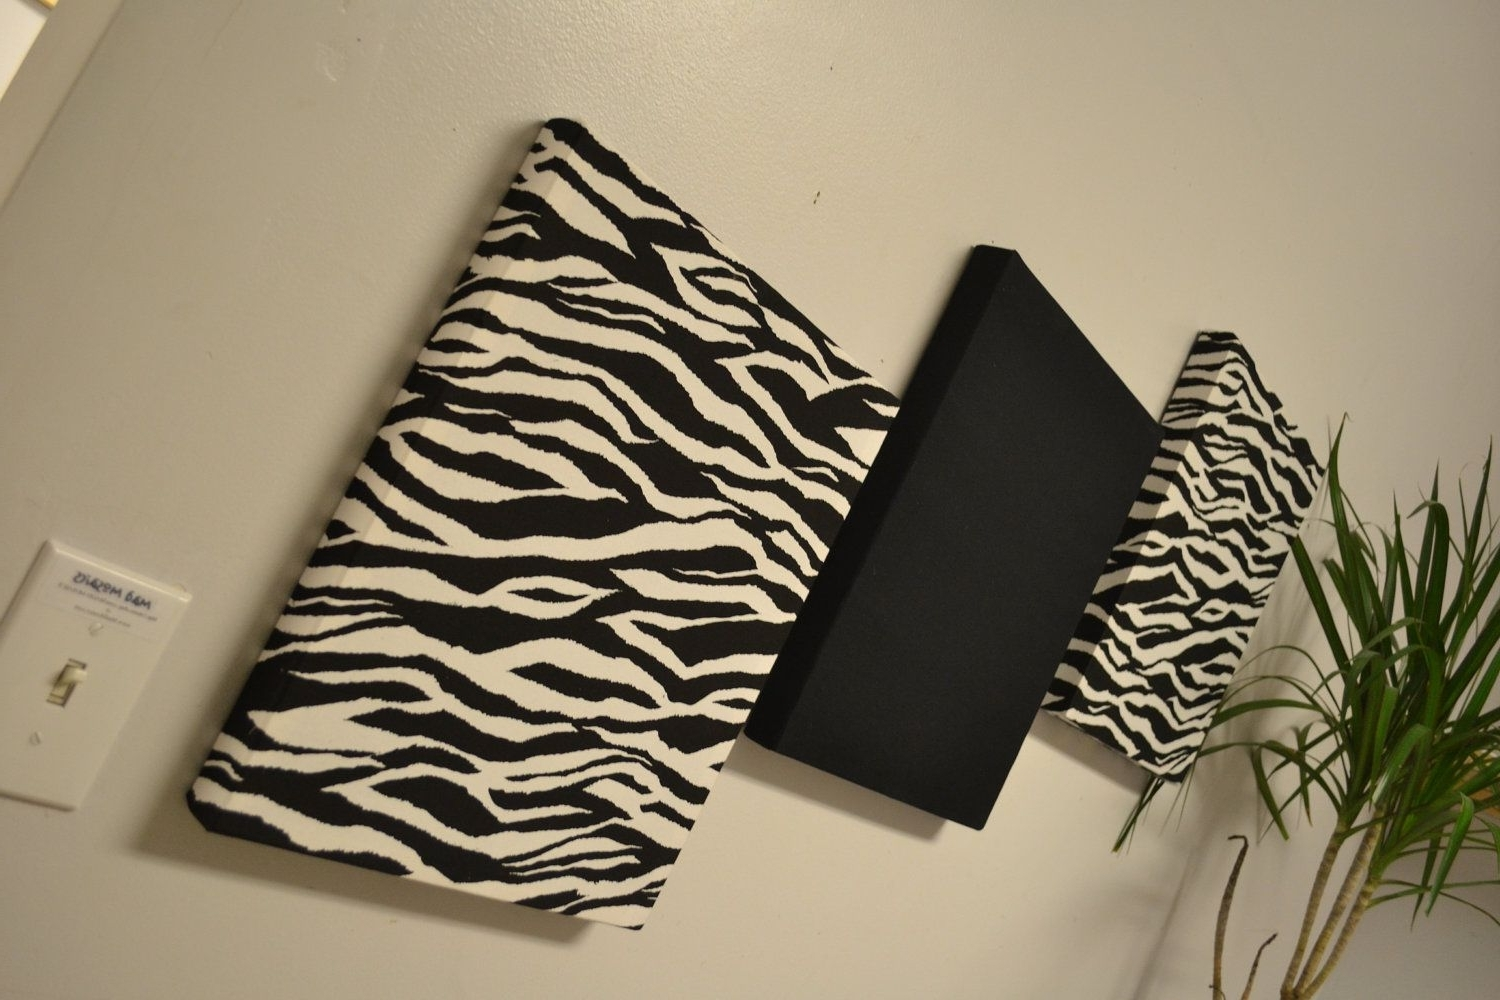 Newest Zebra Wall Decor Canvas Wall Hangings Black Whitemadmosaics In Zebra Canvas Wall Art (View 2 of 15)